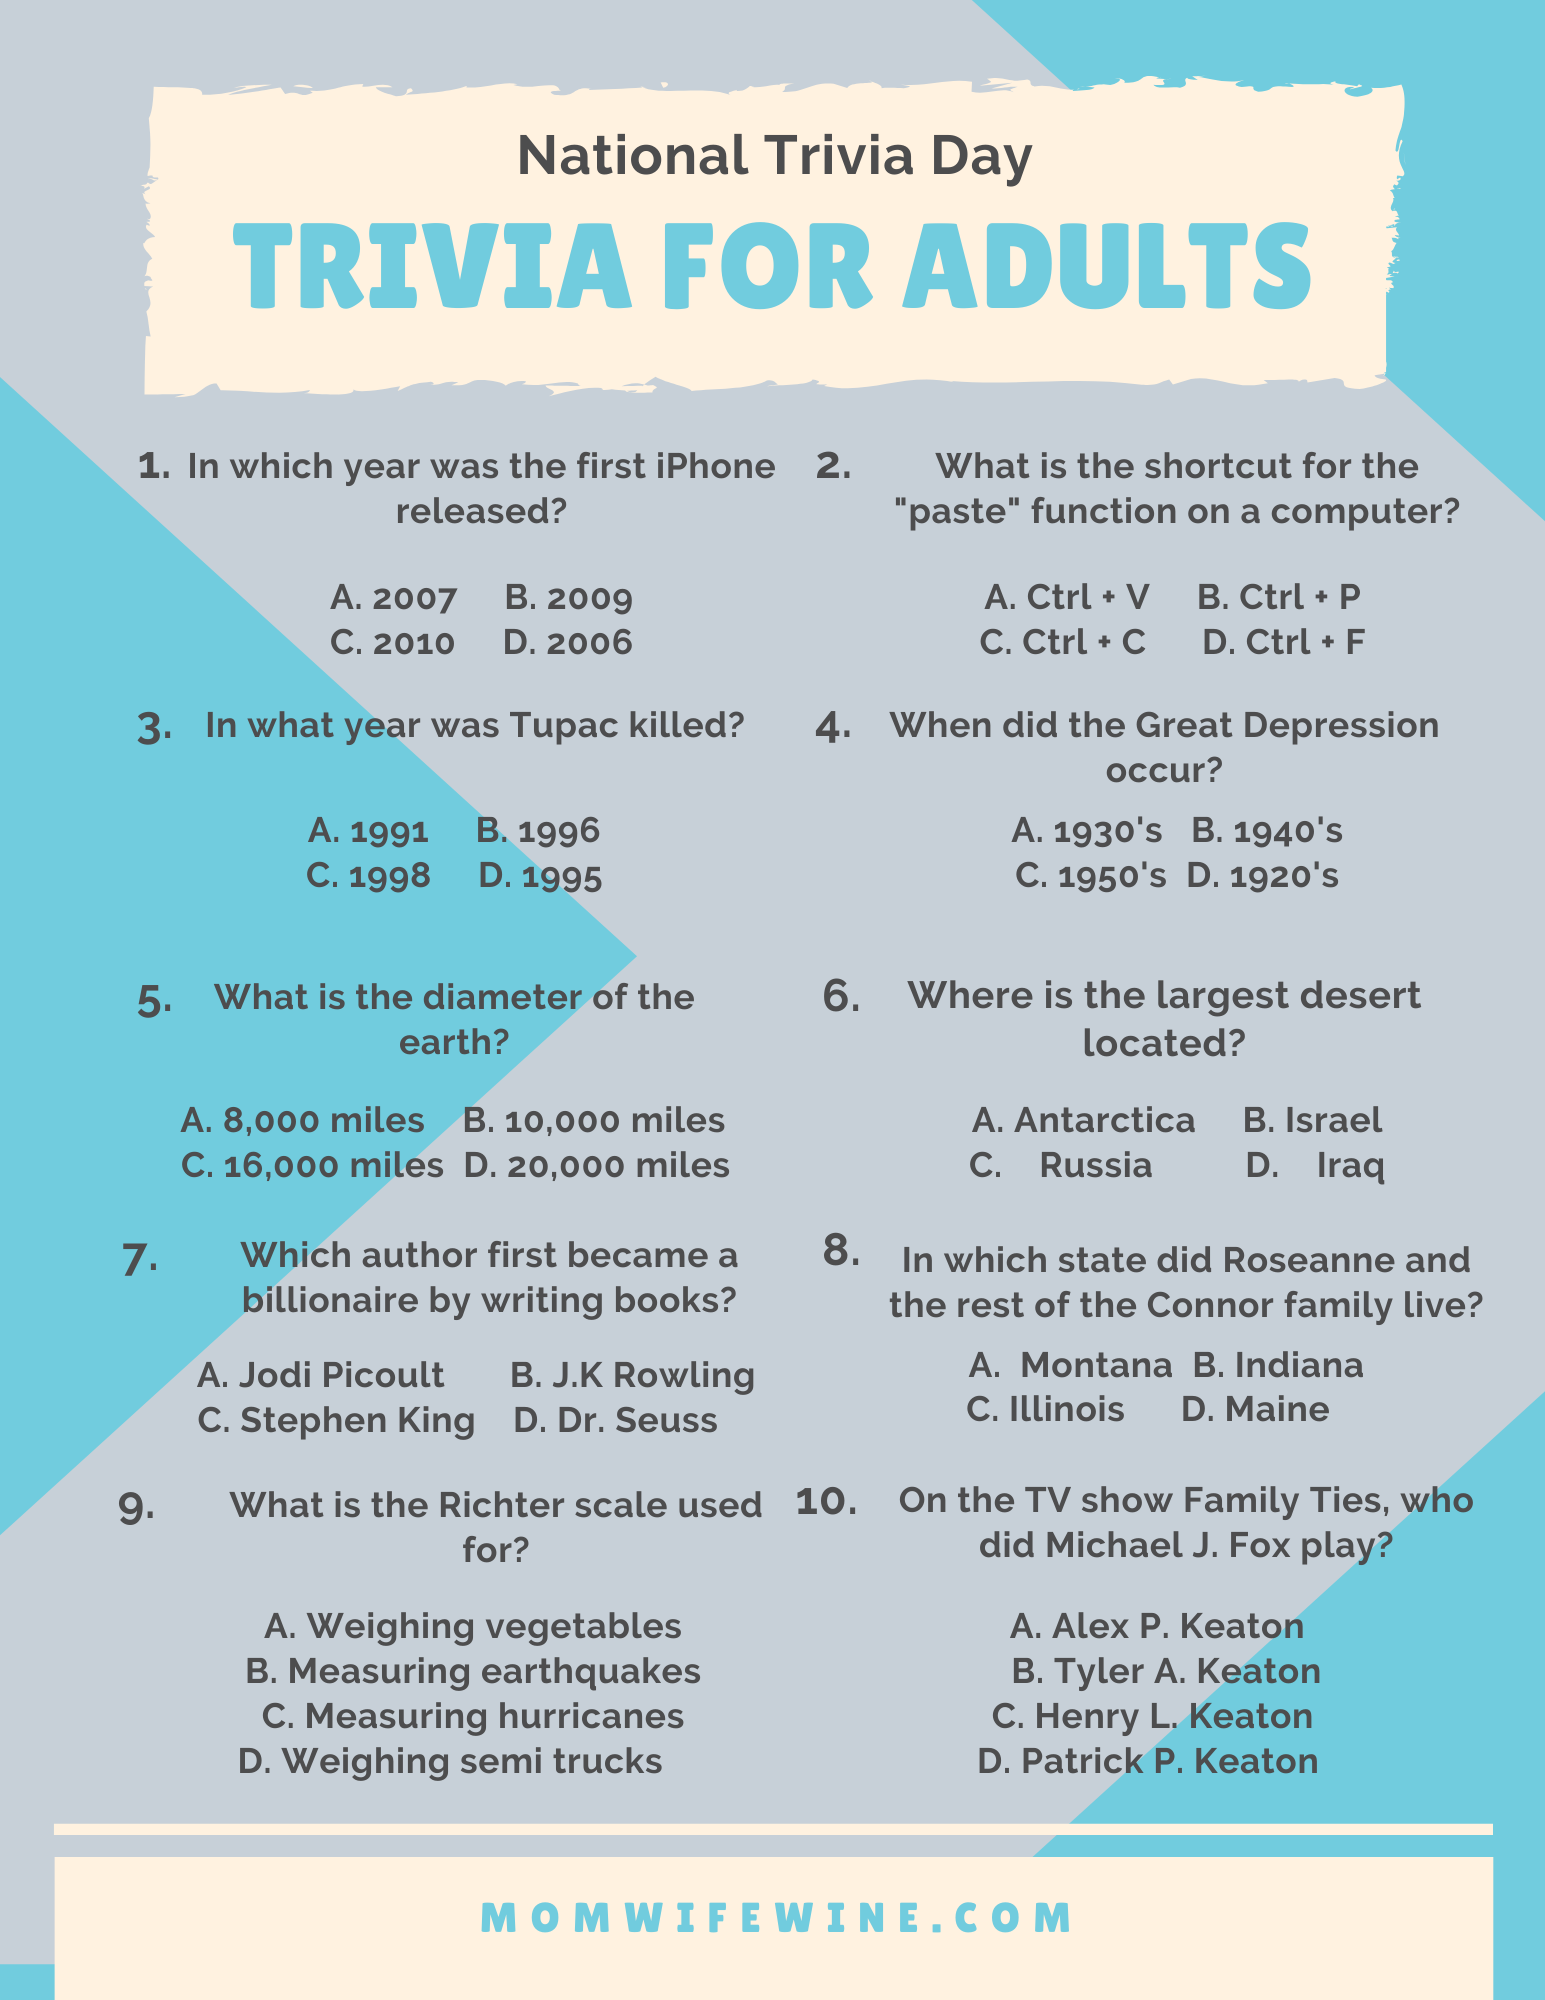 Board Game For Family Trivia Game Trivial Pursuit